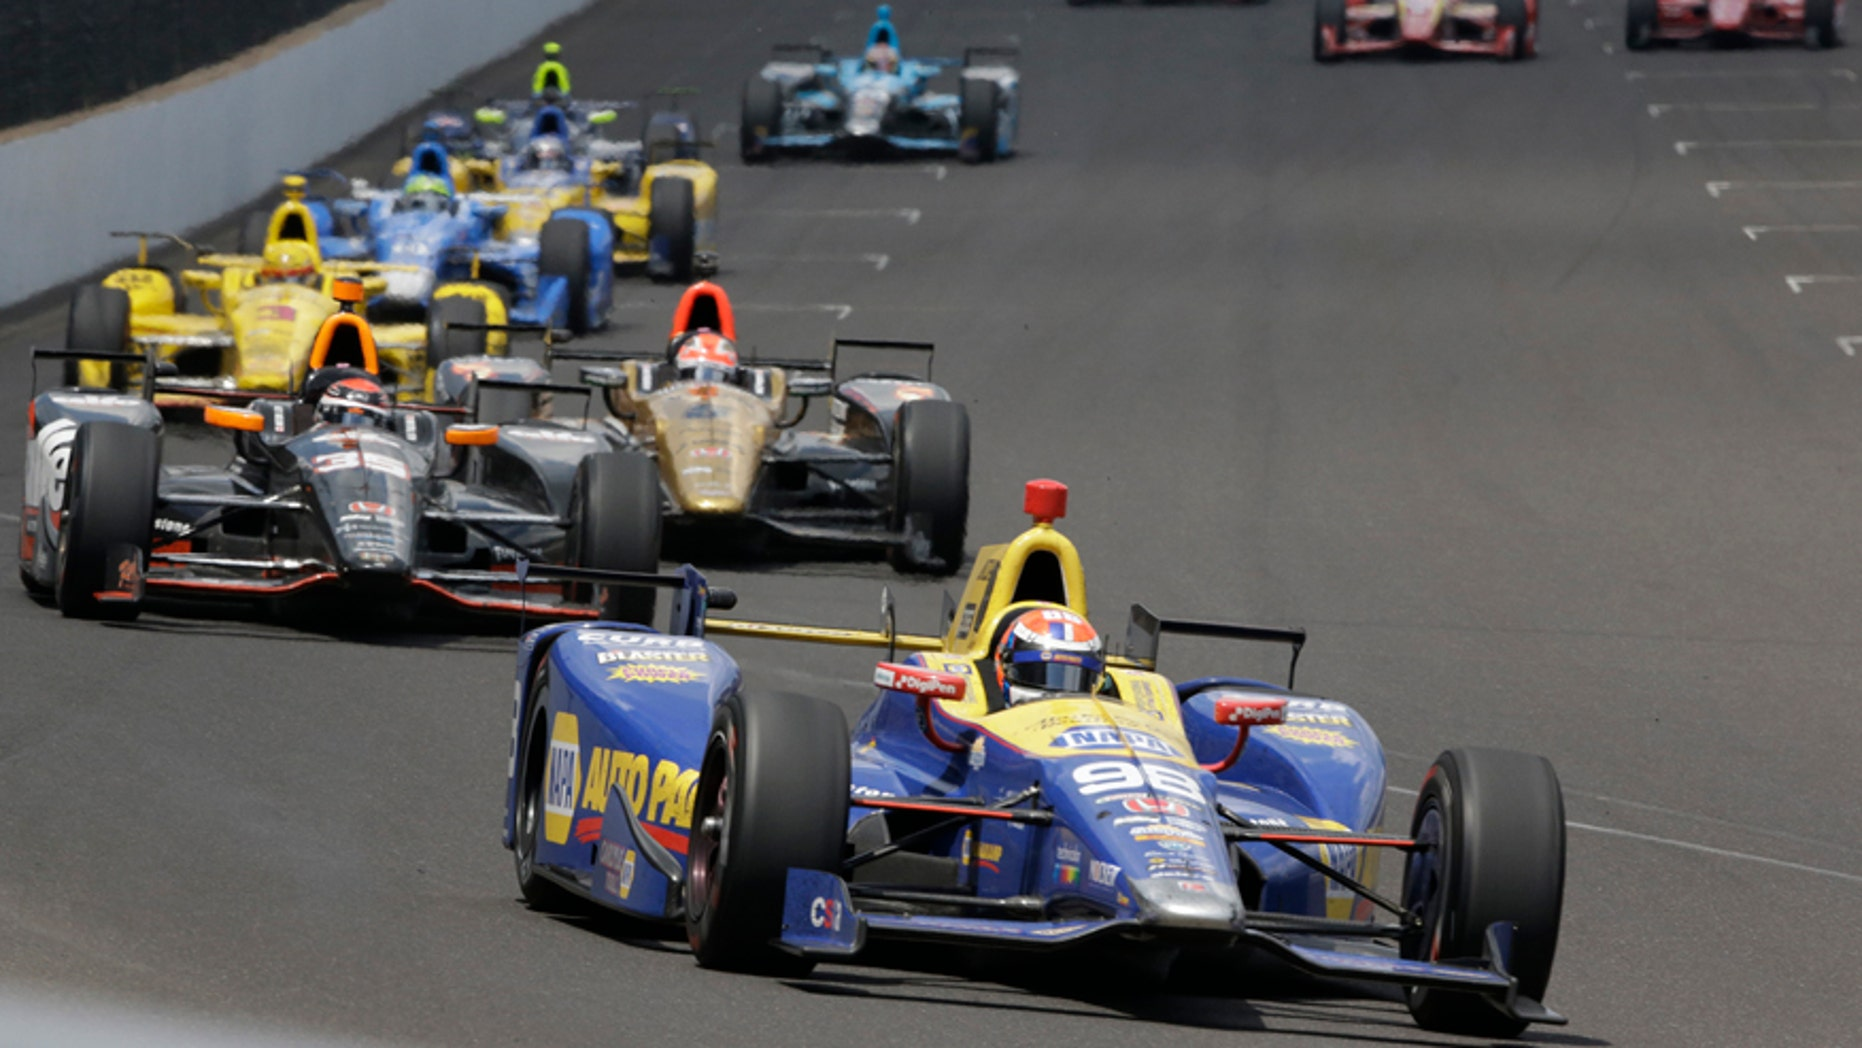 Alexander Rossi leads the field on his way to winning the 100th running of the Indianapolis 500 auto race at Indianapolis Motor Speedway in Indianapolis, Sunday, May 29, 2016. (AP Photo/R Brent Smith)